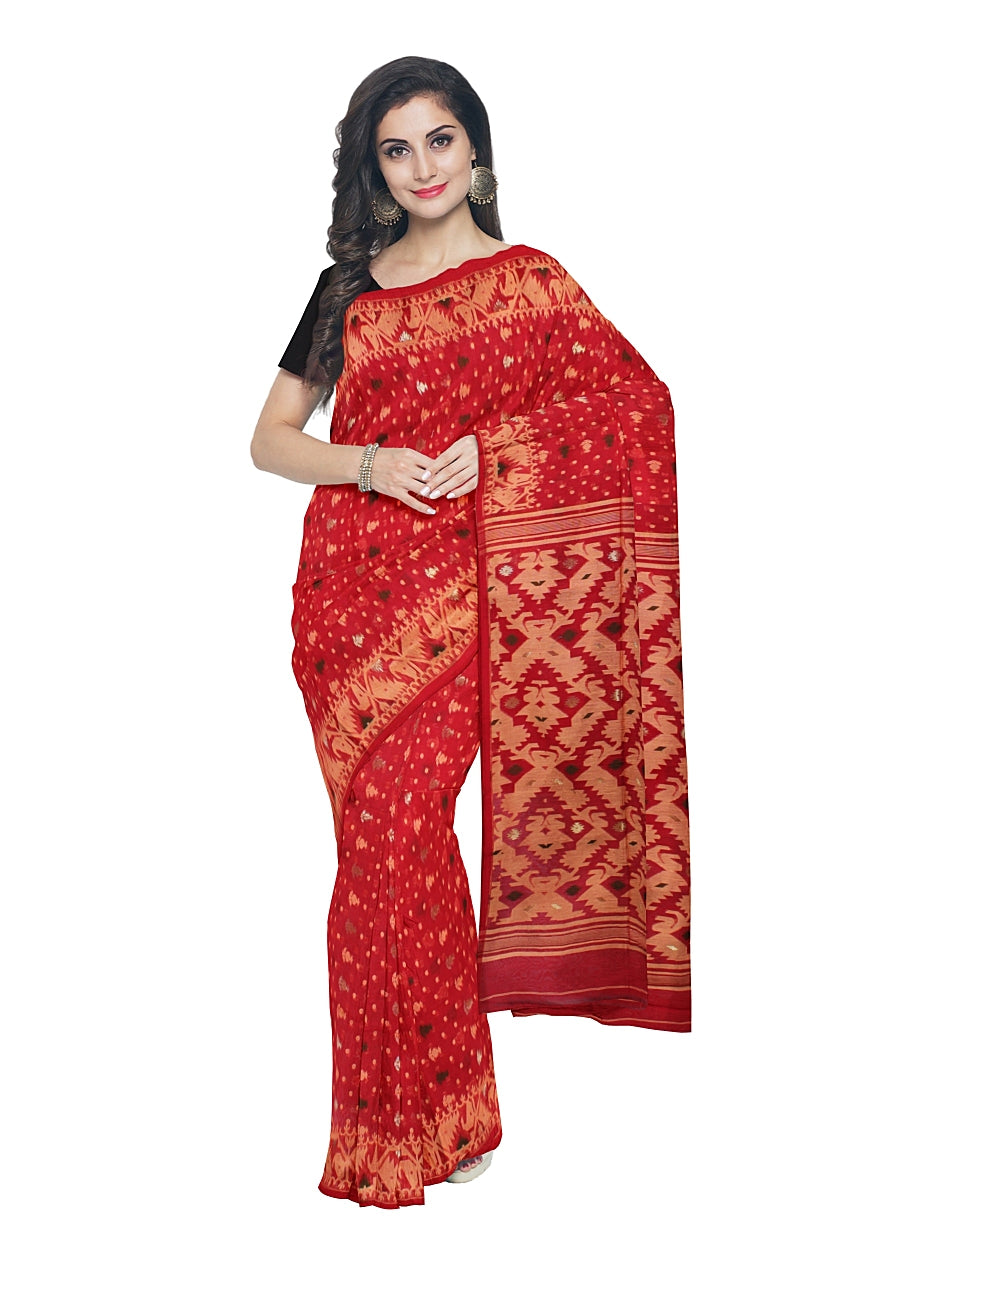 Red and Beige Bengal Handloom Jamdani Saree